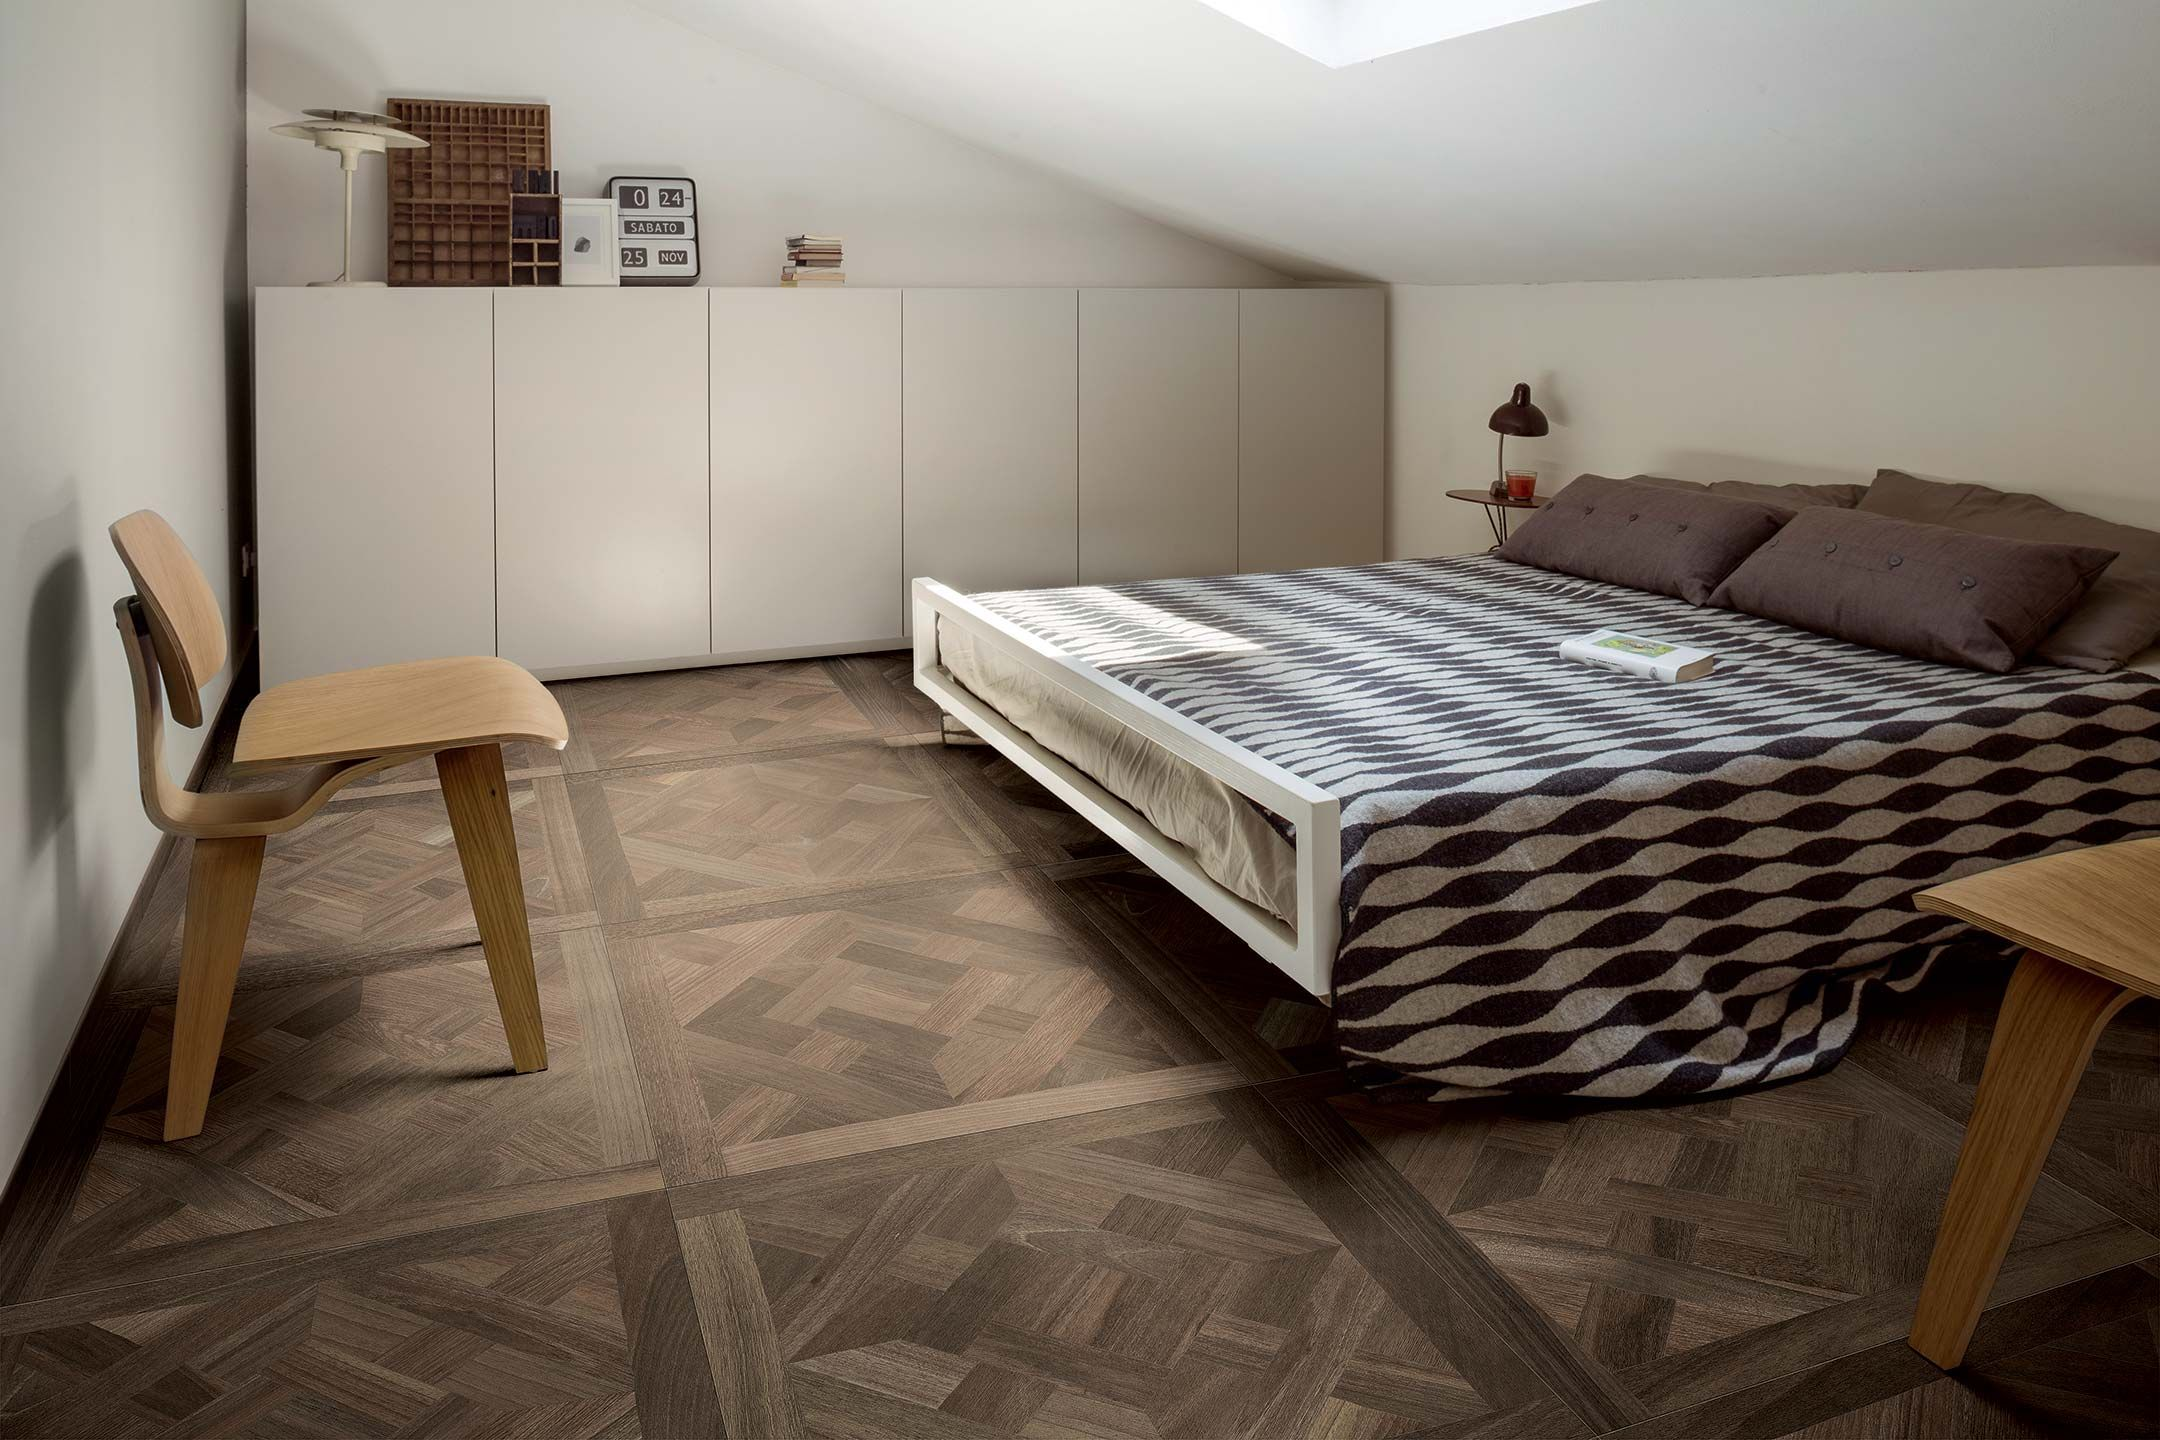 Bedroom With Wood Effect Flooring Wooden Tile Of CDC Interesting Idea For Laying Floor